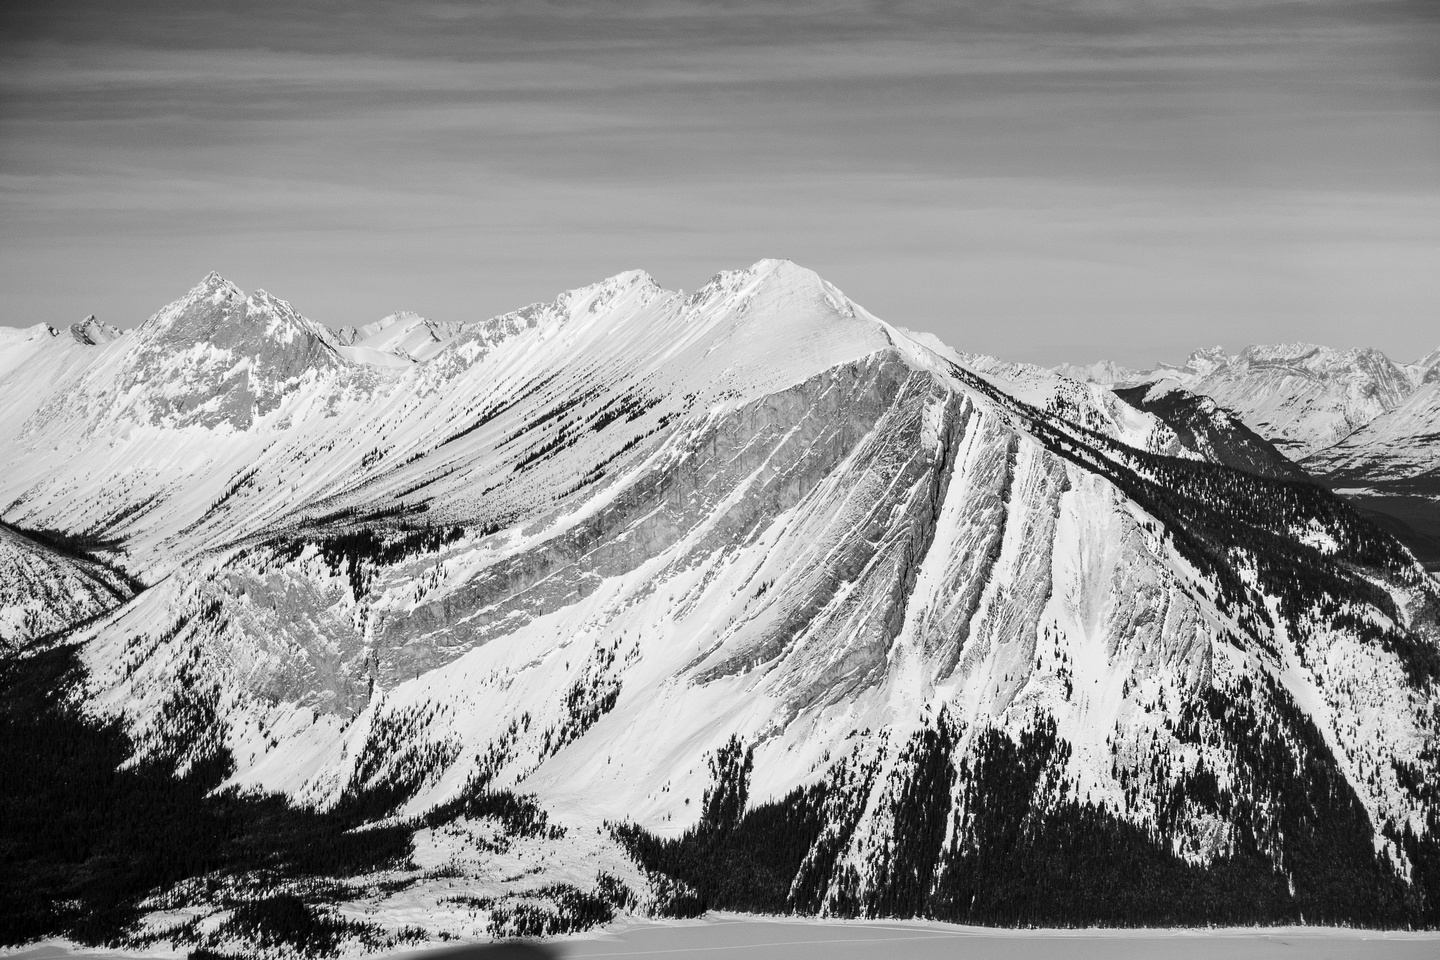 Mount Indefatigable was among my first scrambles - a fond memory.